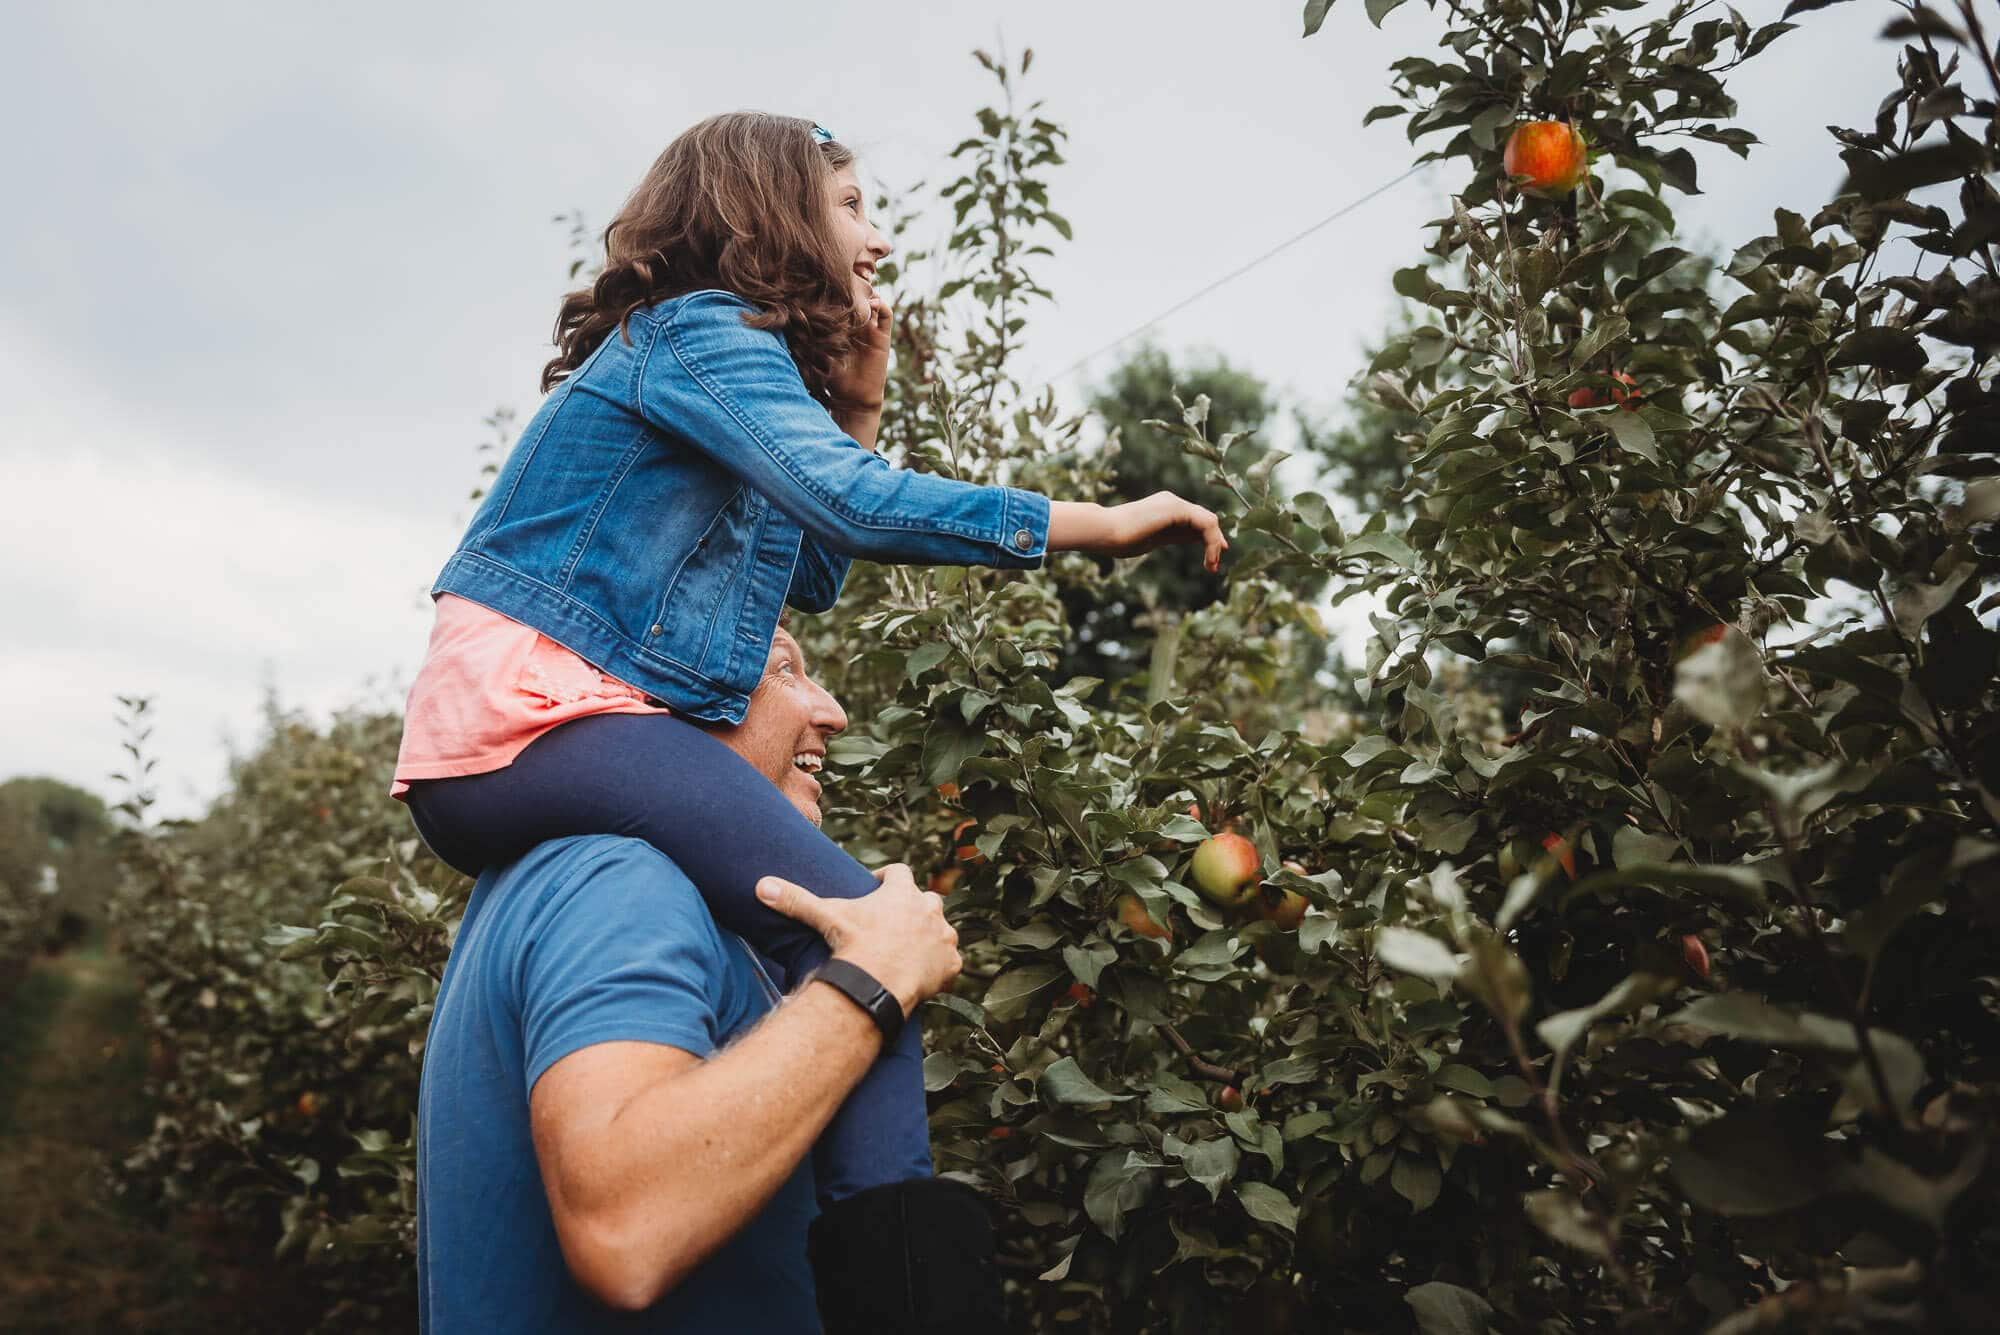 Vancouver lifestyle family photographer captures girl picking apples on dad's shoulders